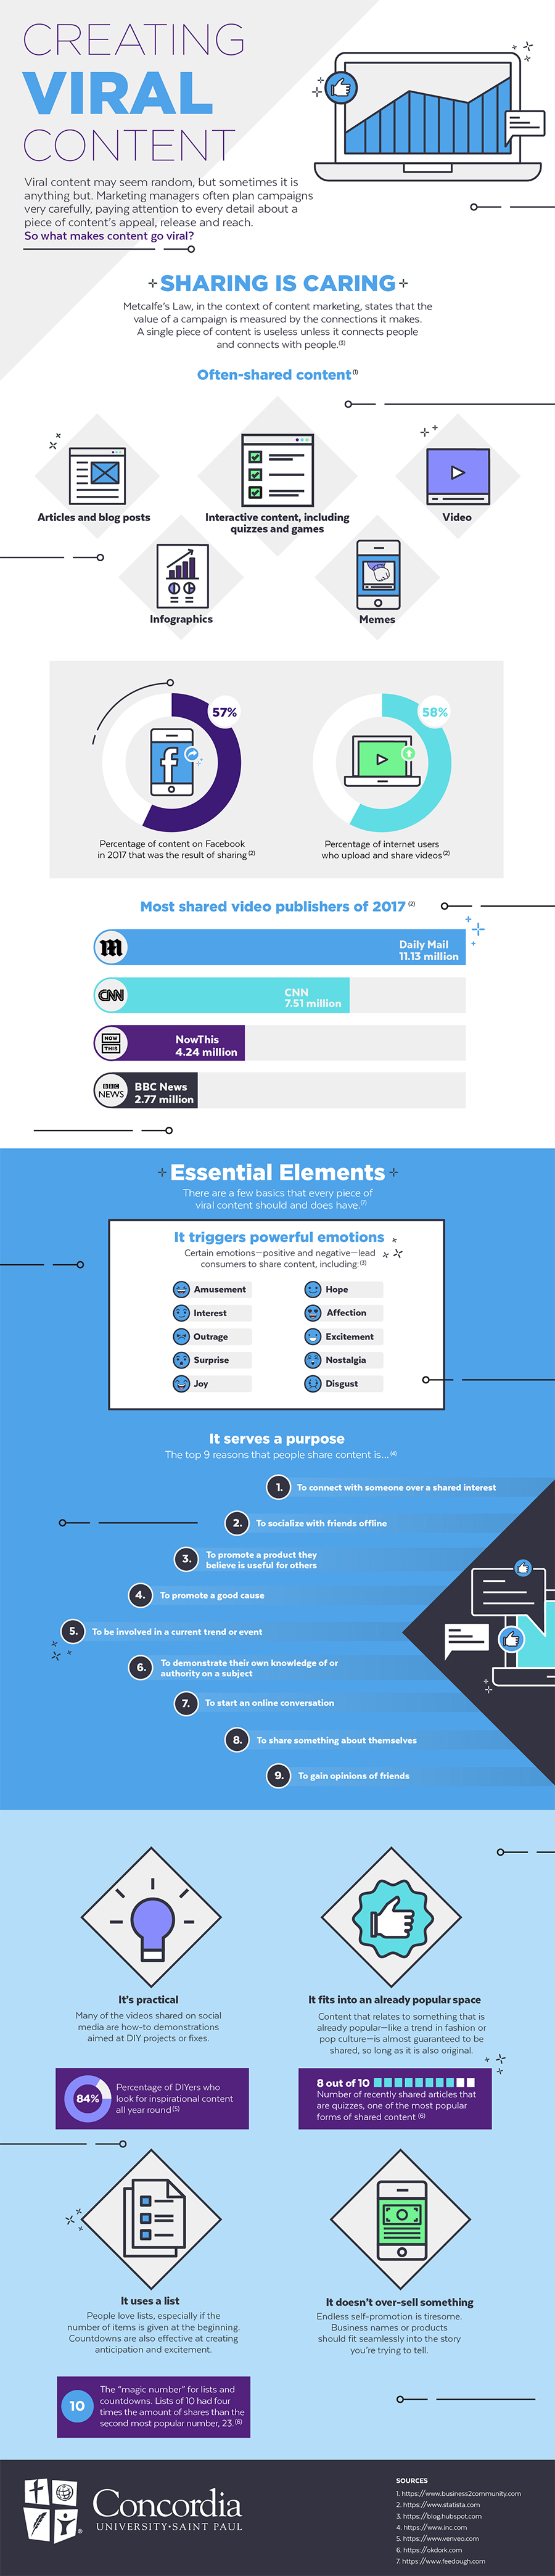 Infographic looks at common elements in viral content